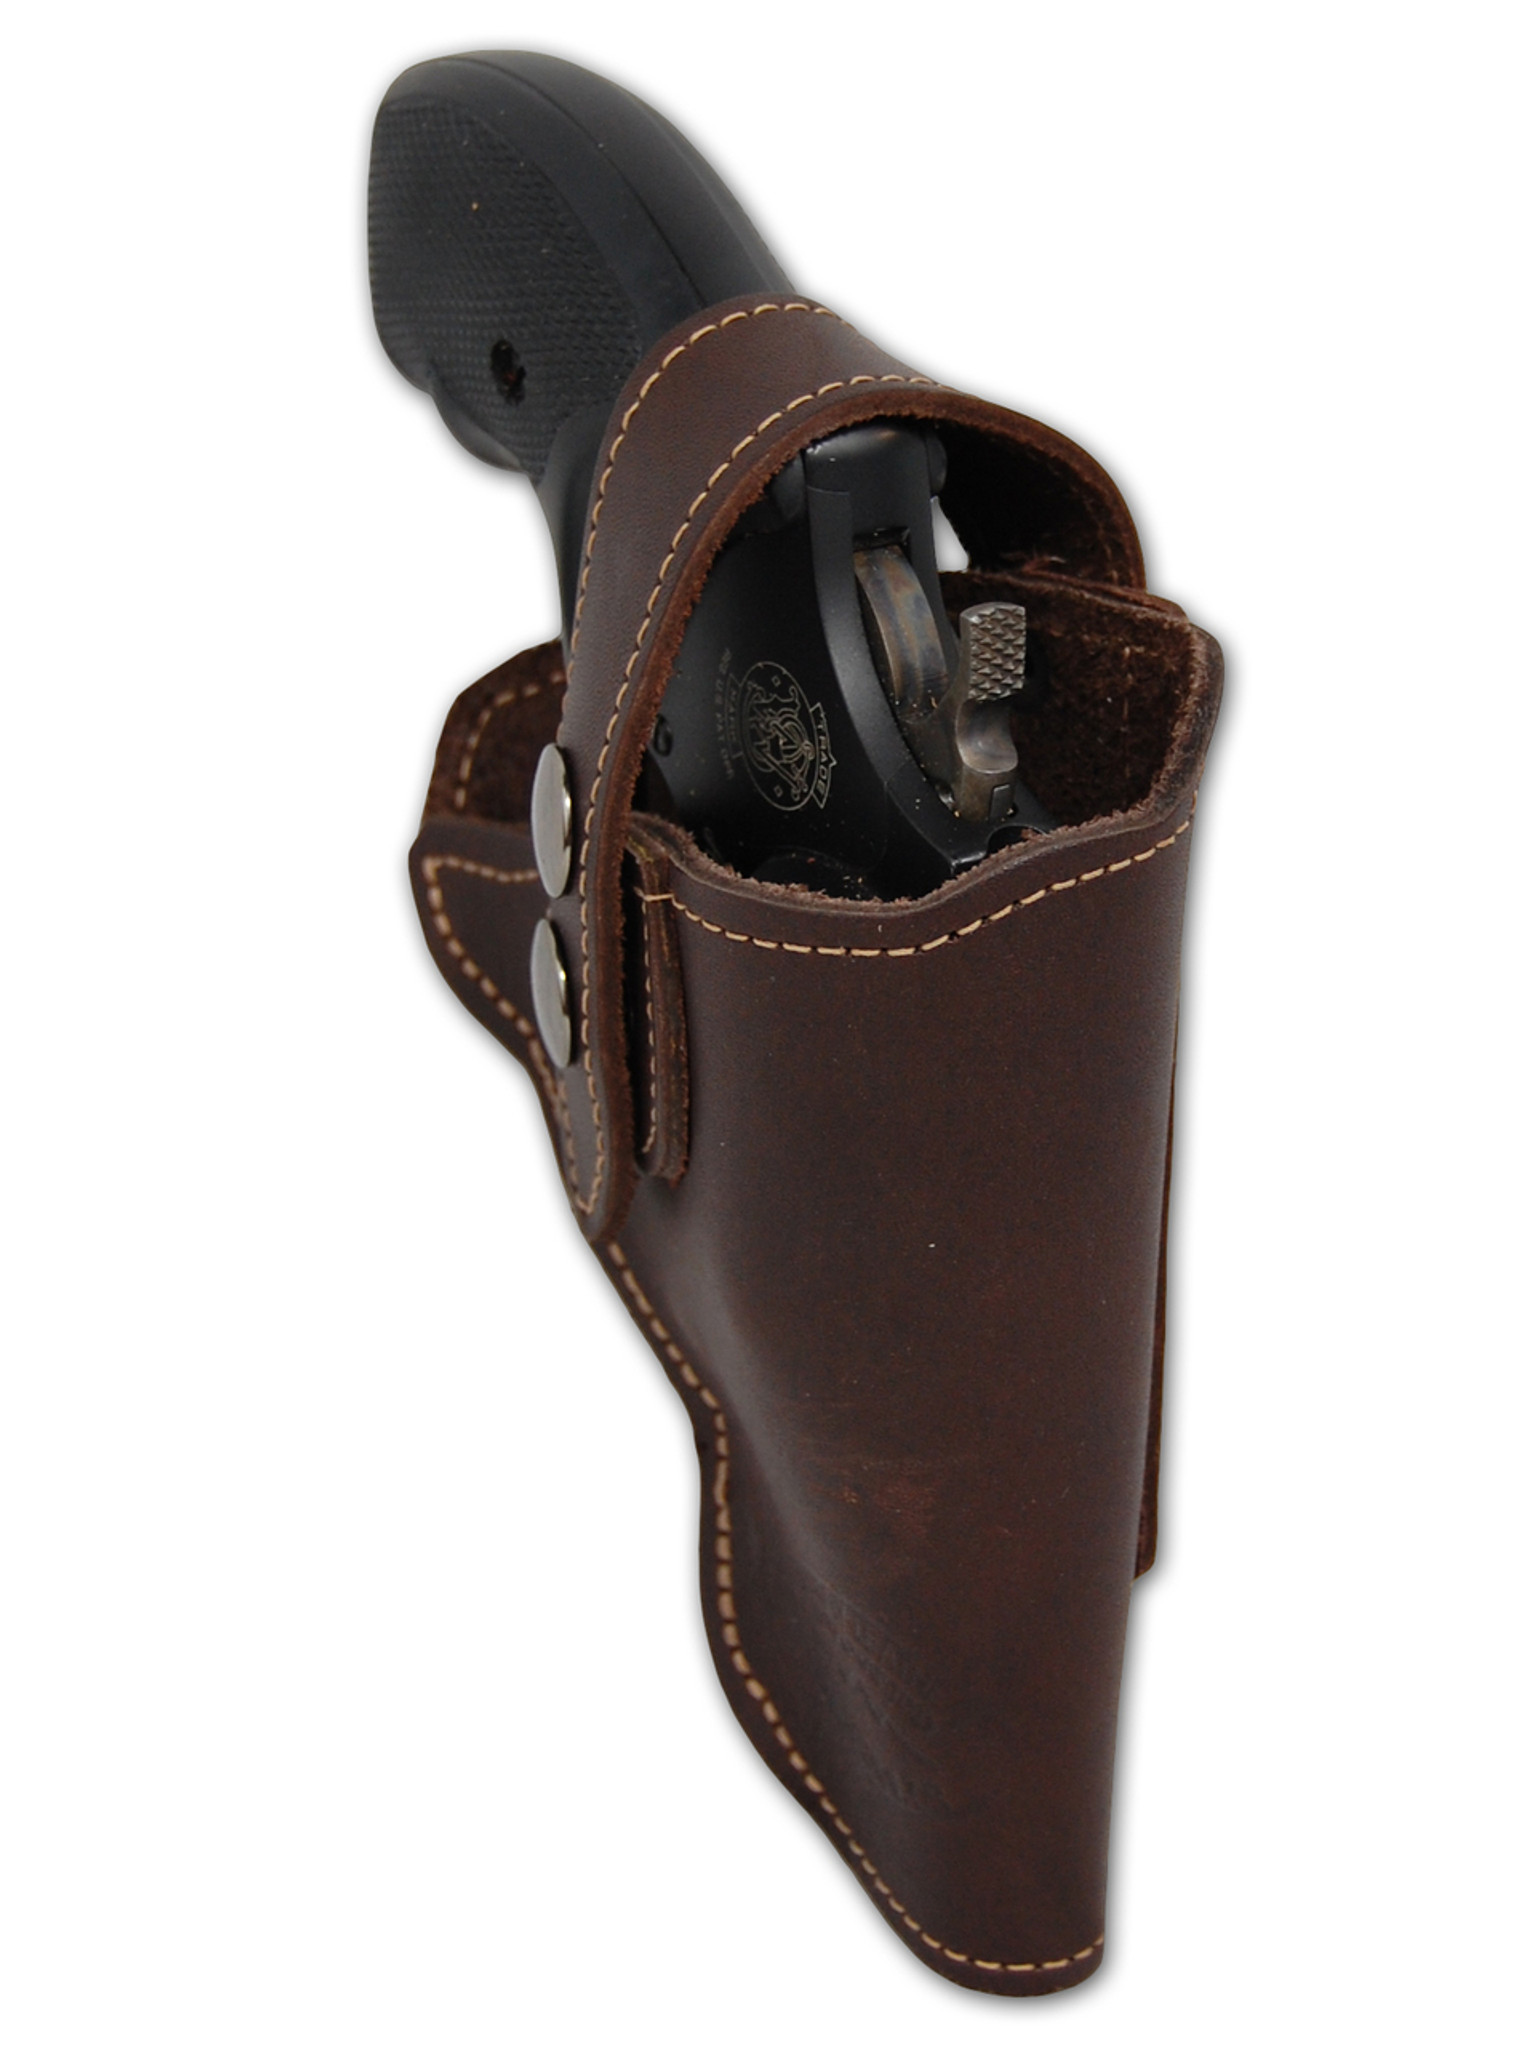 New Brown Leather OWB Holster for Snub Nose 2